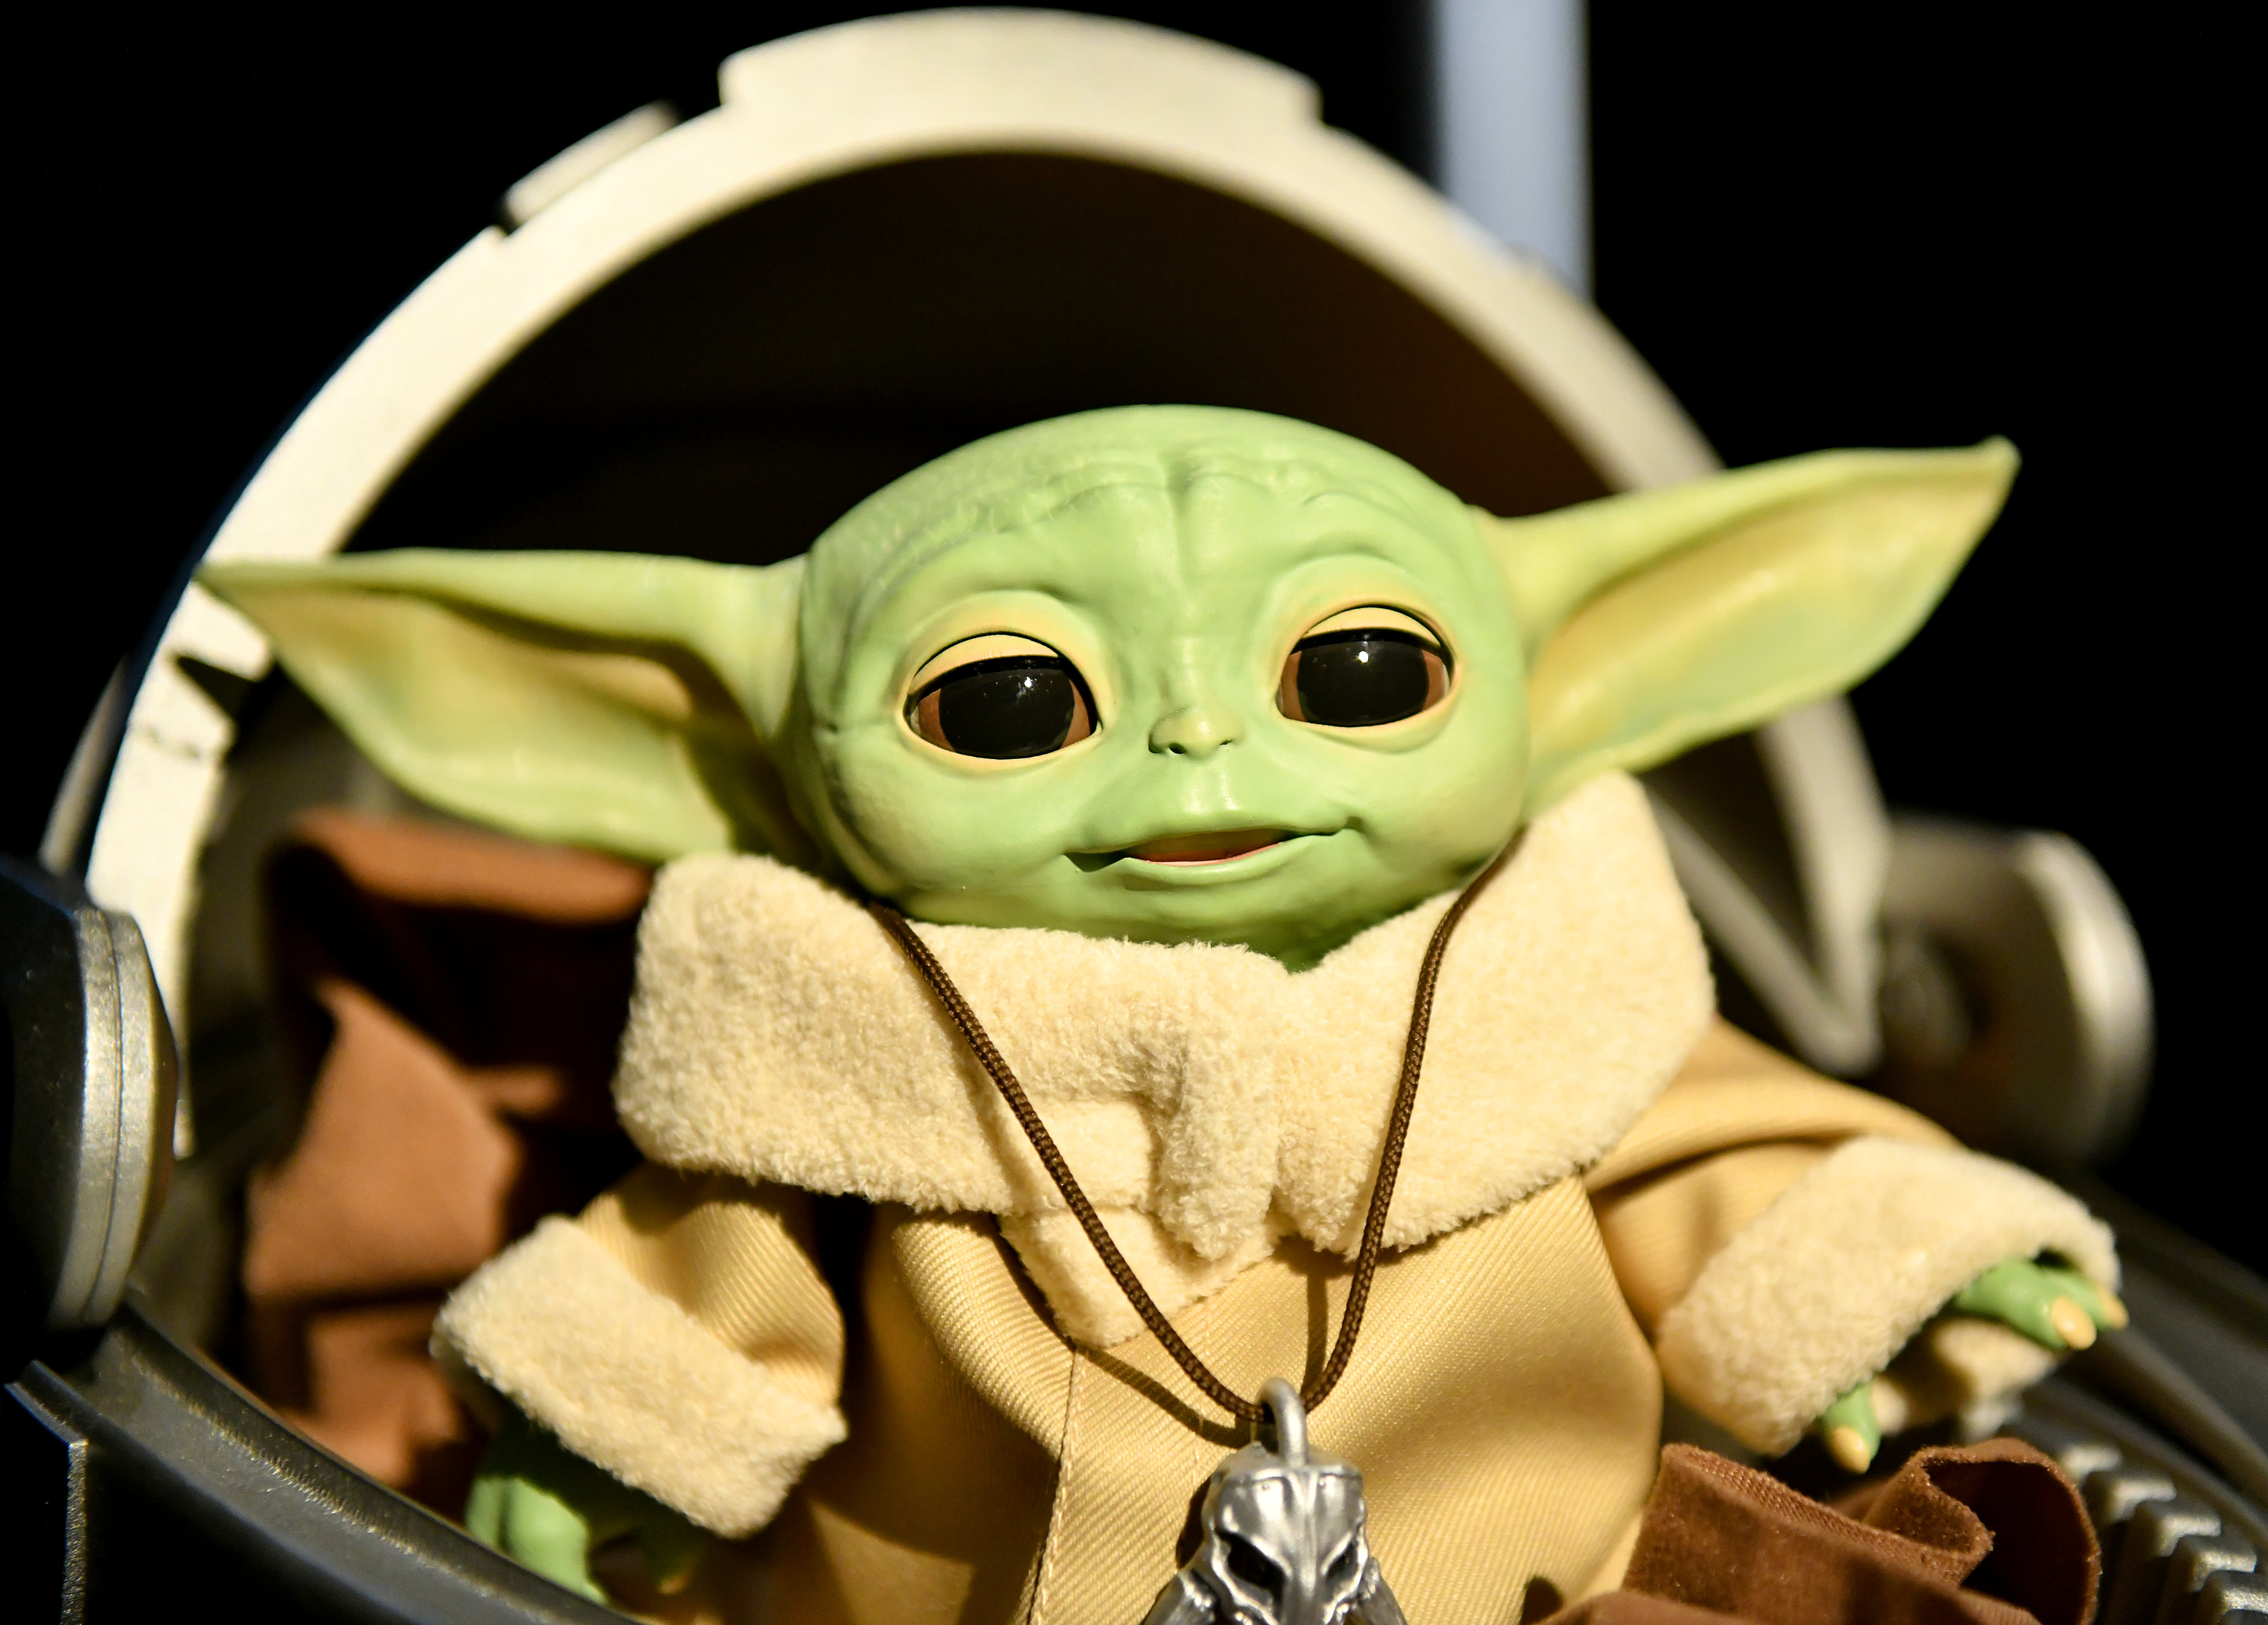 Disney+ will fuel Hasbro gains long after the pandemic is over as Star Wars toy sales jump - CNBC